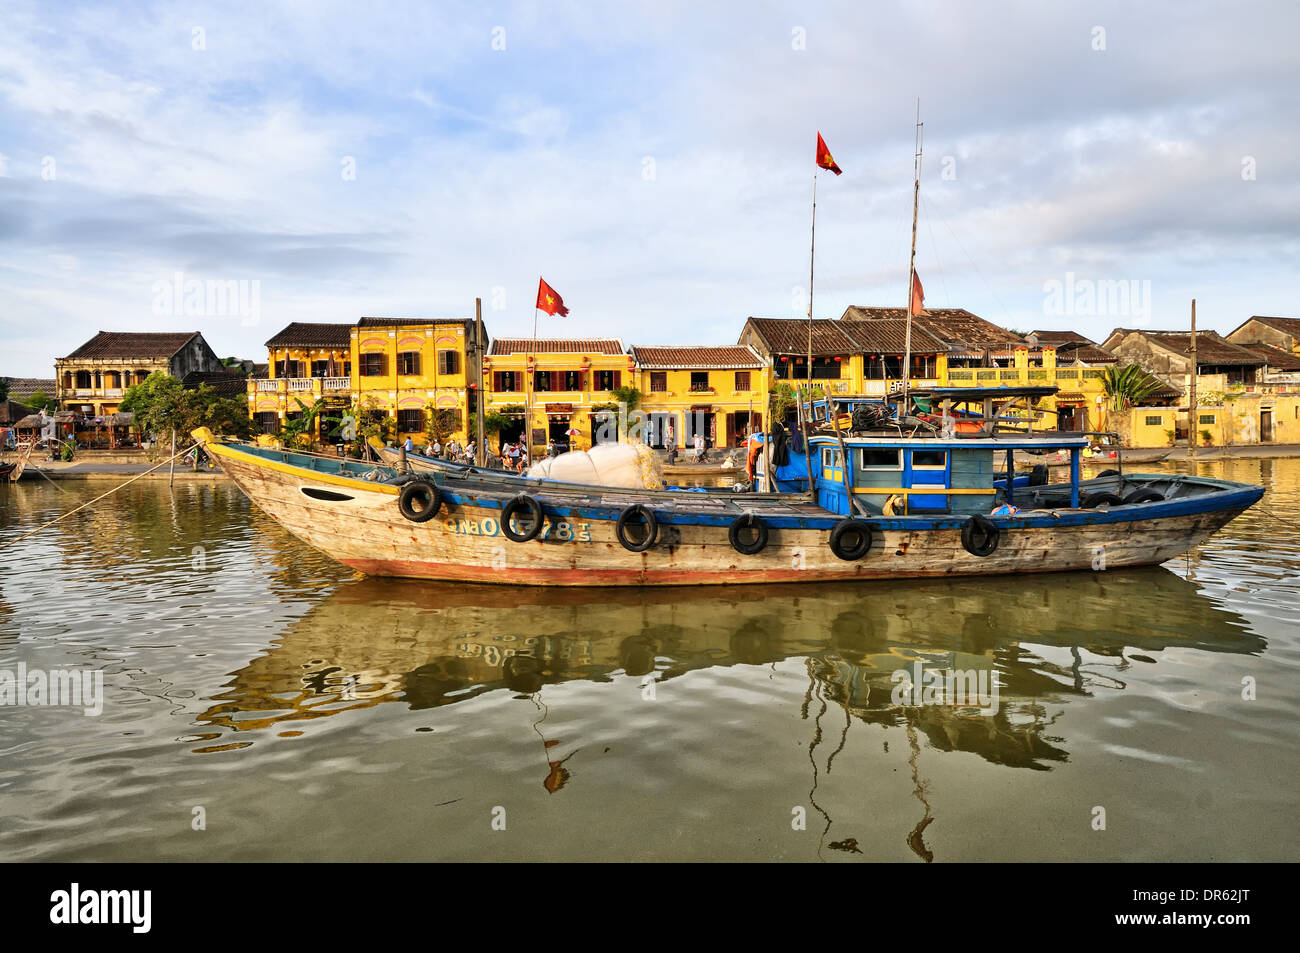 Thu Bon River, Hoi An - Stock Image